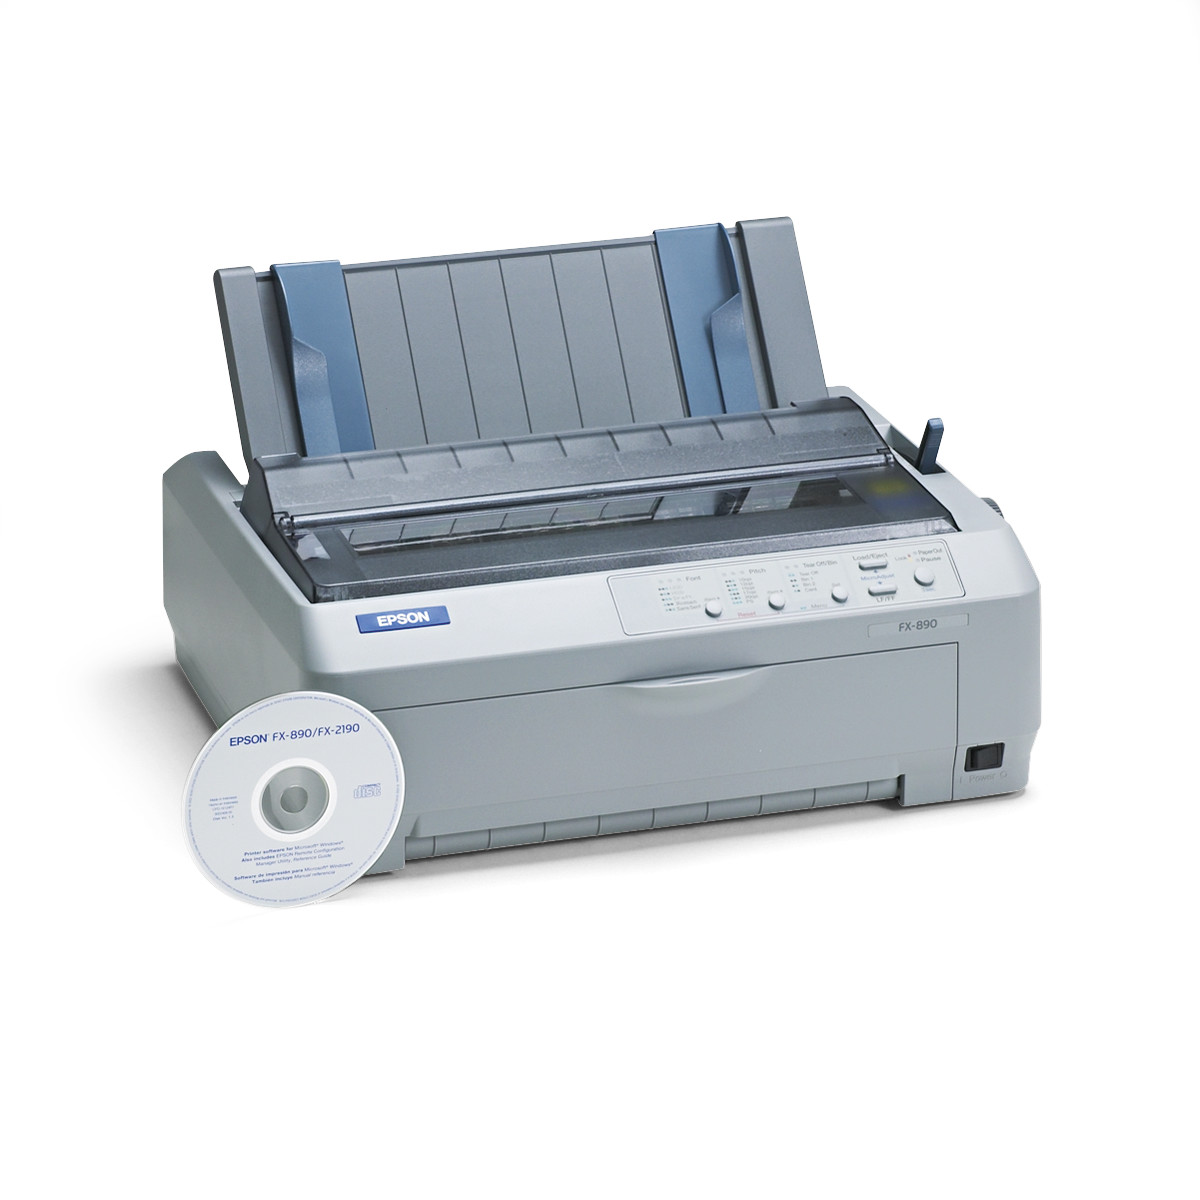 Epson FX-890 Dot Matrix Impact Printer by Epson